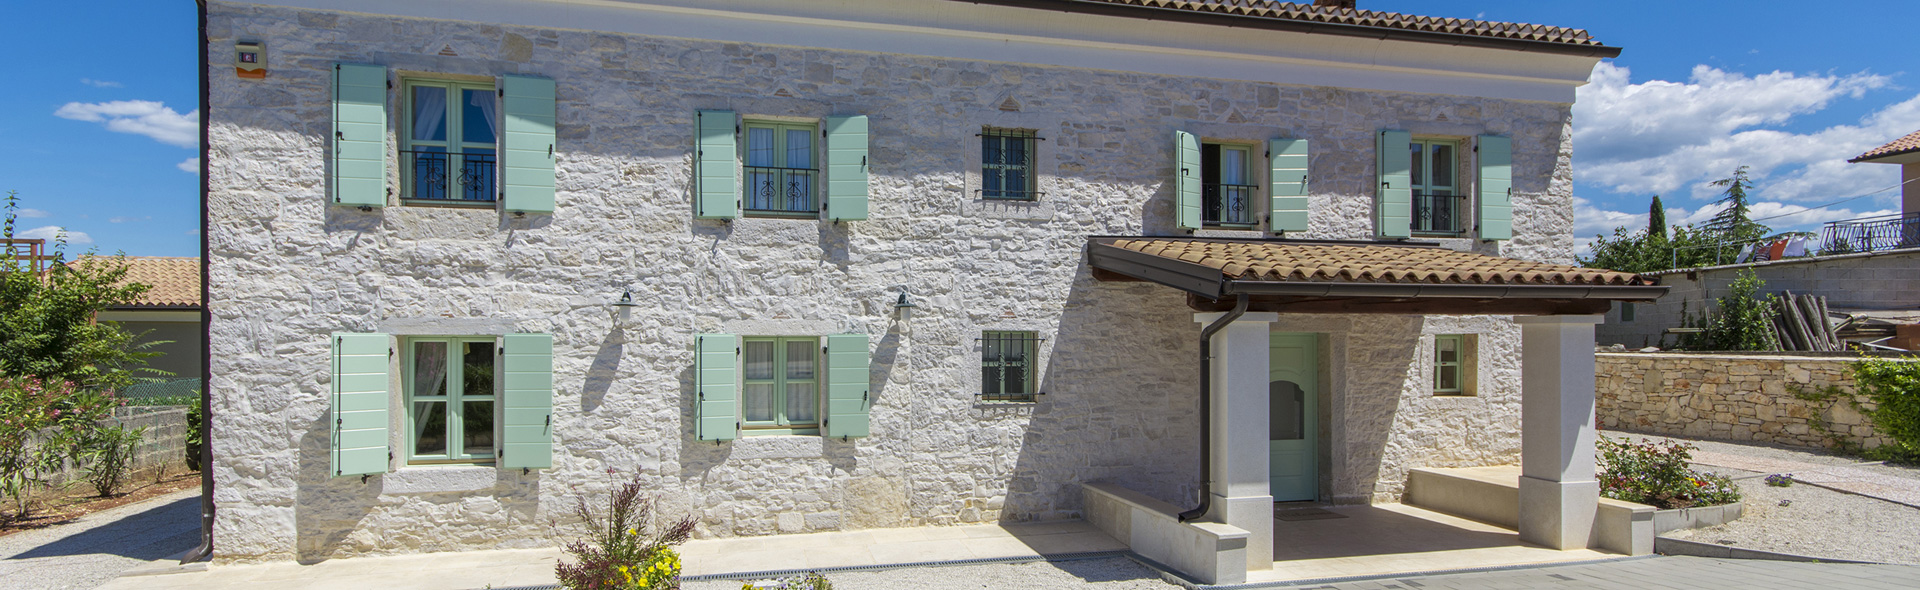 stone villas in Istria